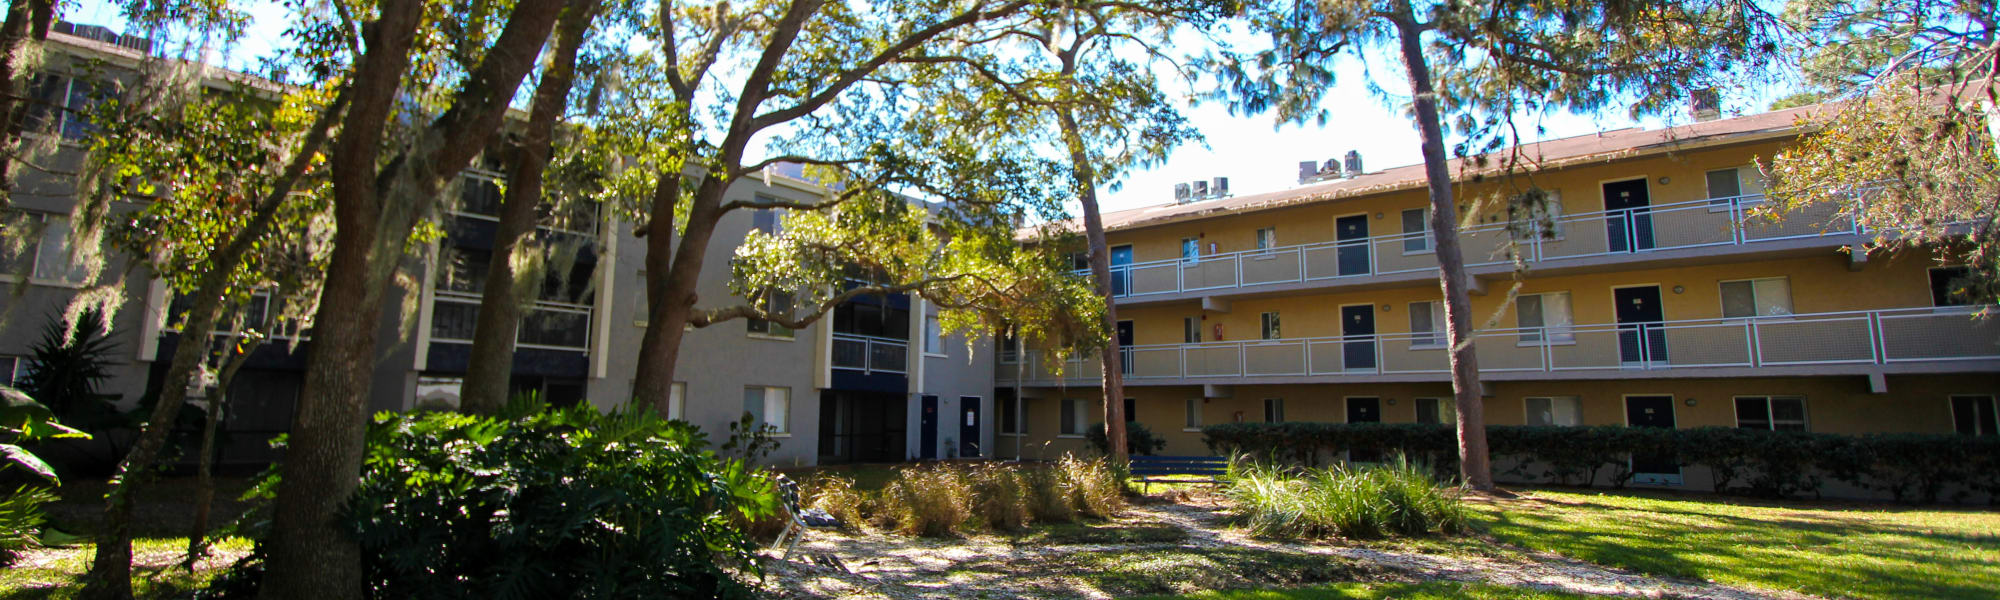 Exterior view of our apartments at Promenade at Edgewater in Dunedin, Florida